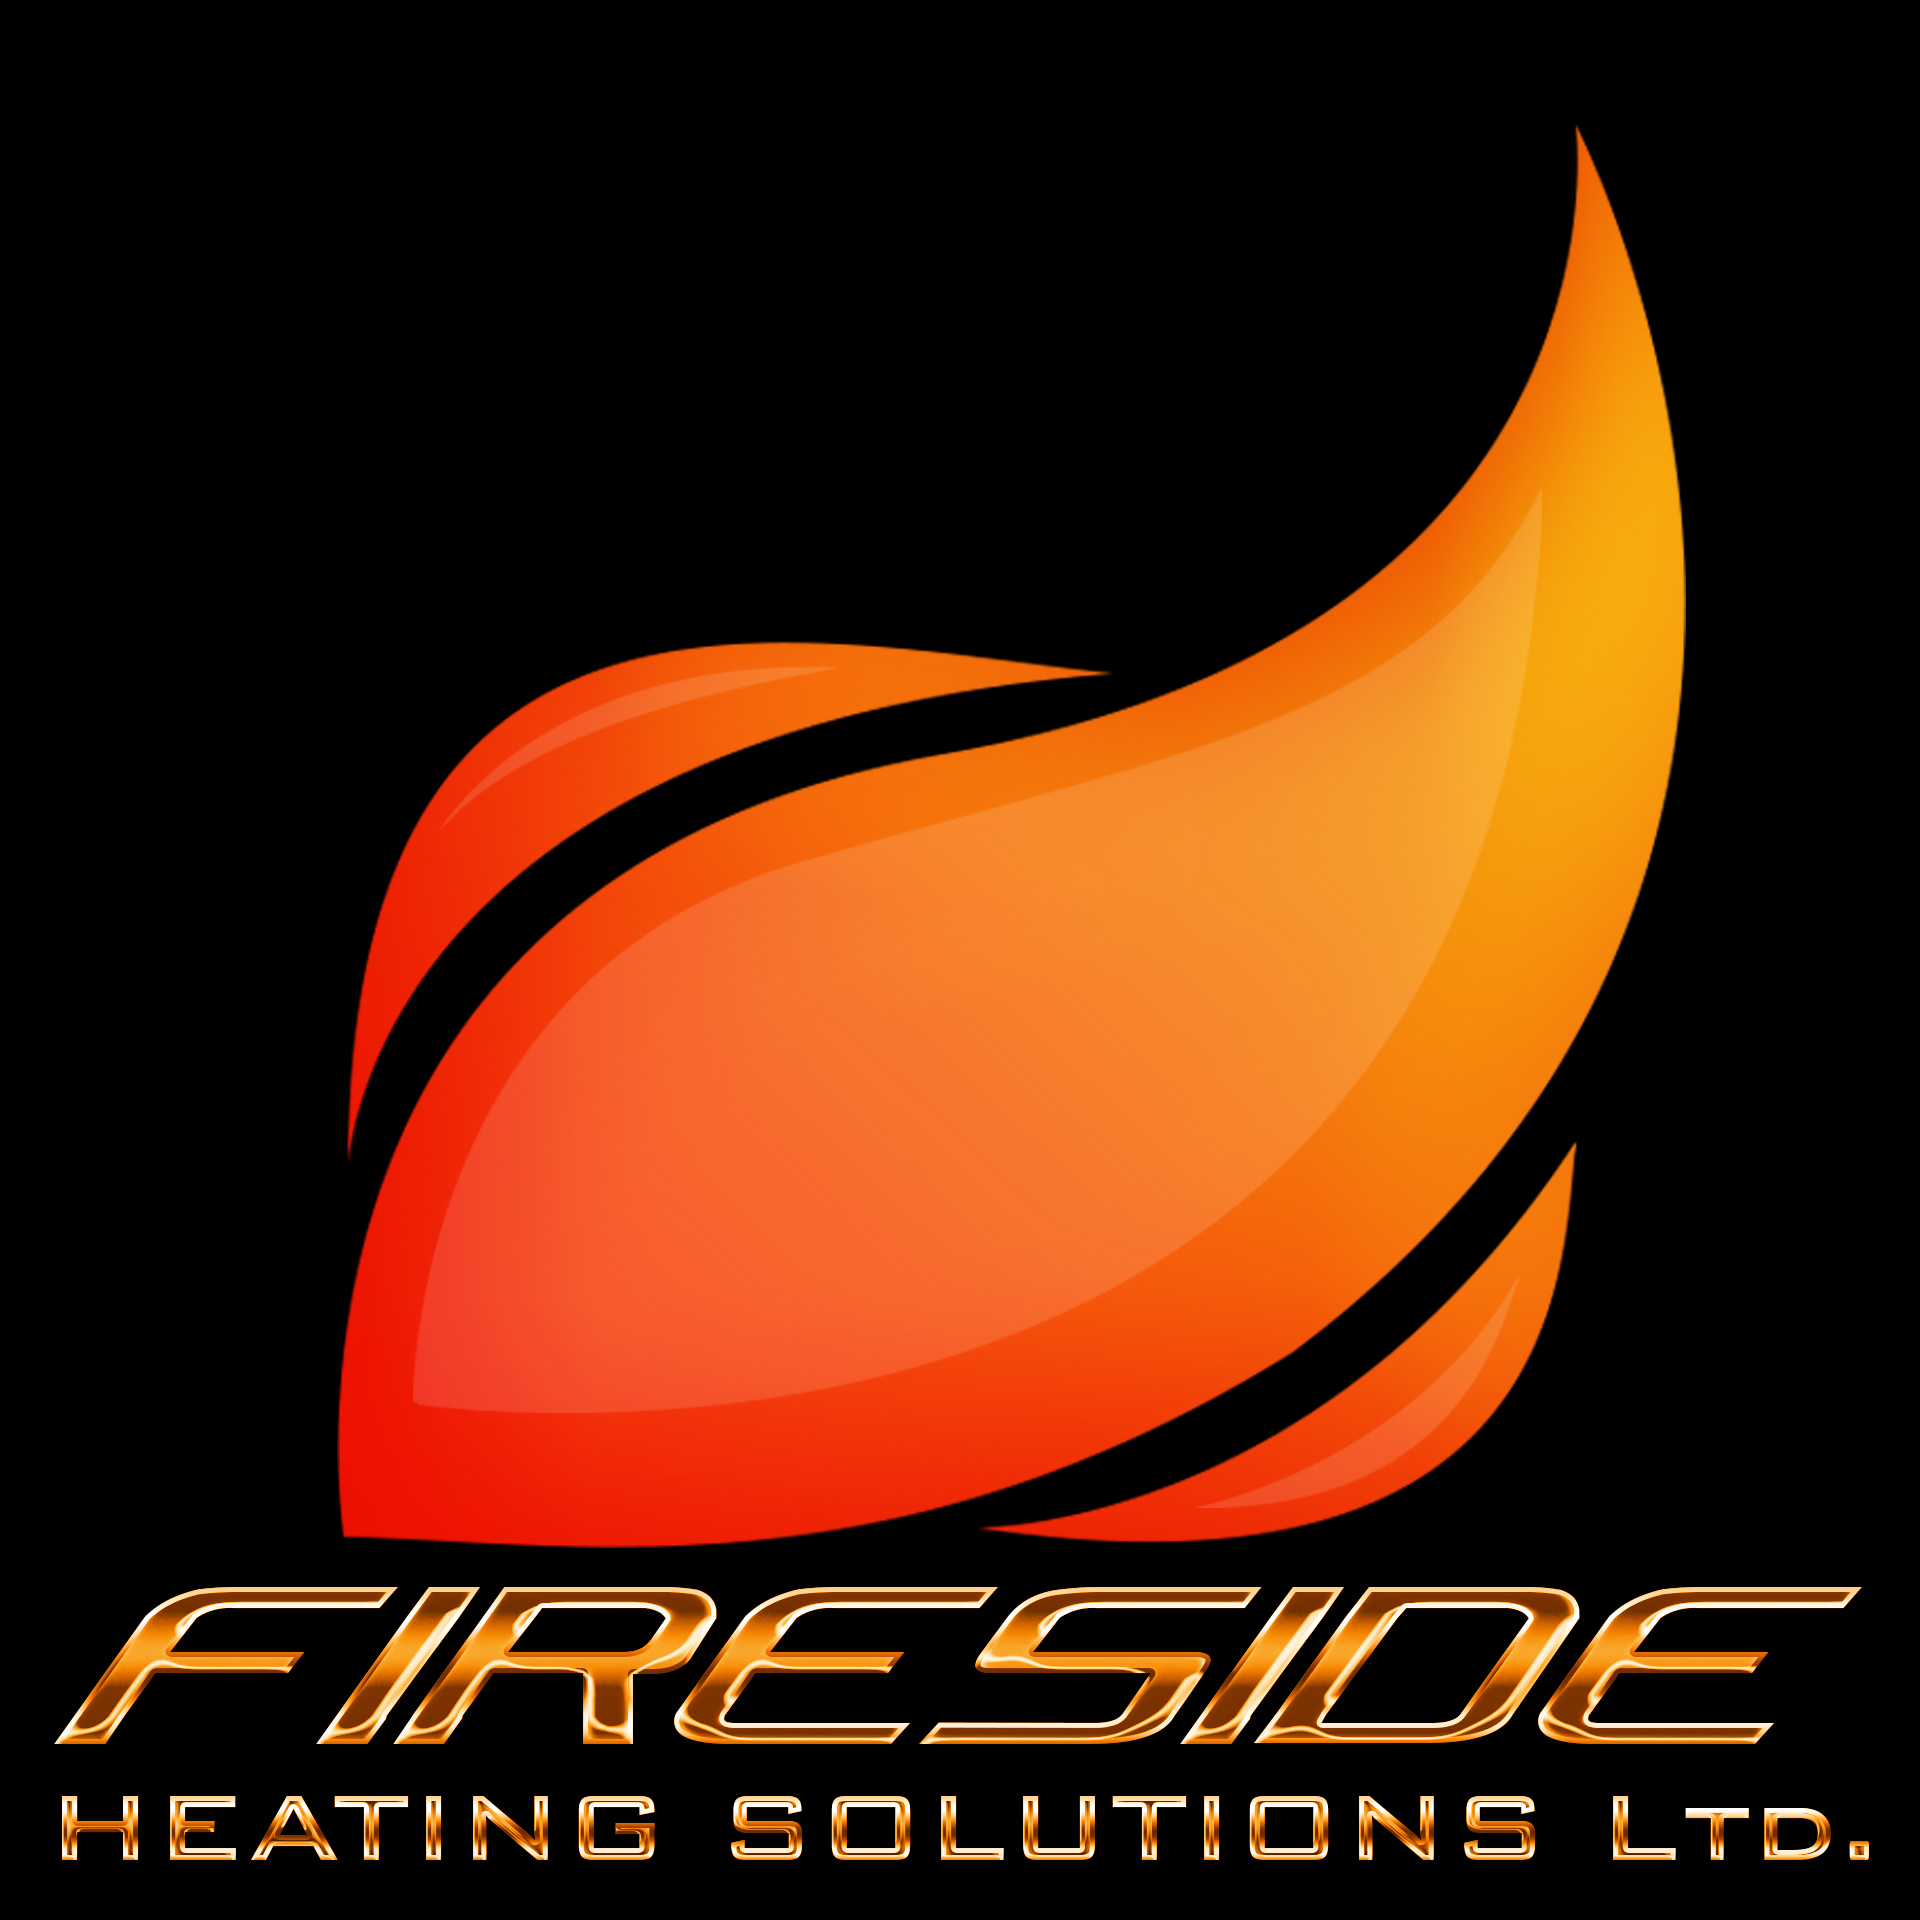 Logo Design by chAnDOS - Entry No. 119 in the Logo Design Contest Creative Logo Design for Fireside Heating Solutions Ltd..